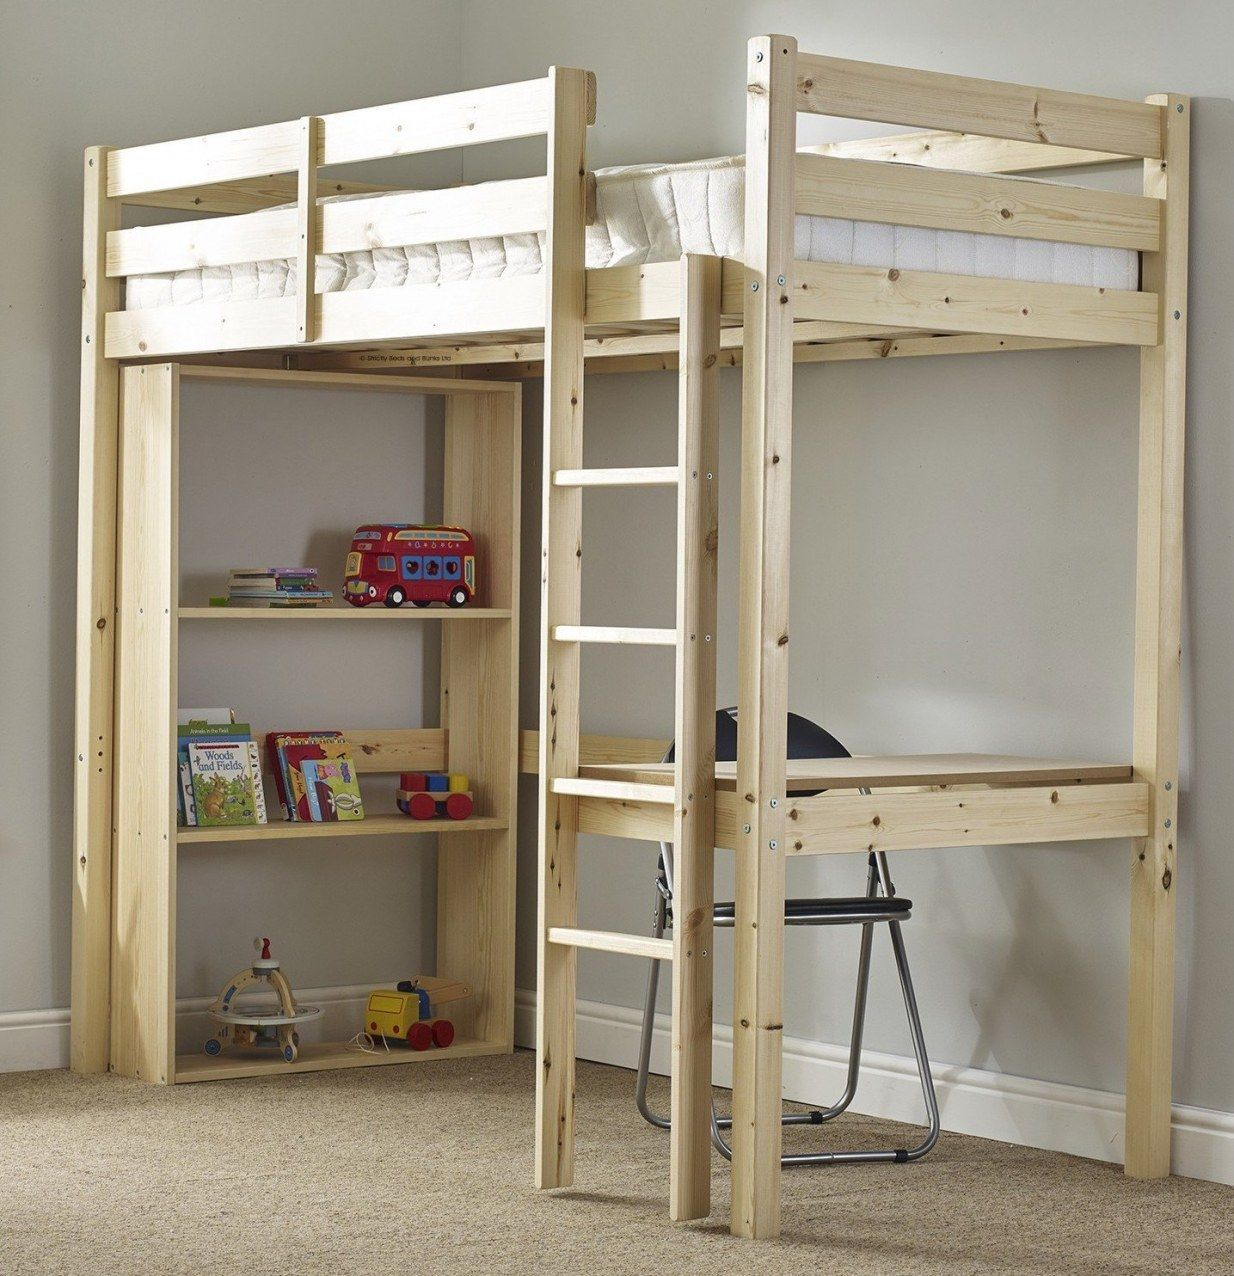 High loft bed with stairs  Loft Bed High  Casa Bats in   Pinterest  Lofts and House